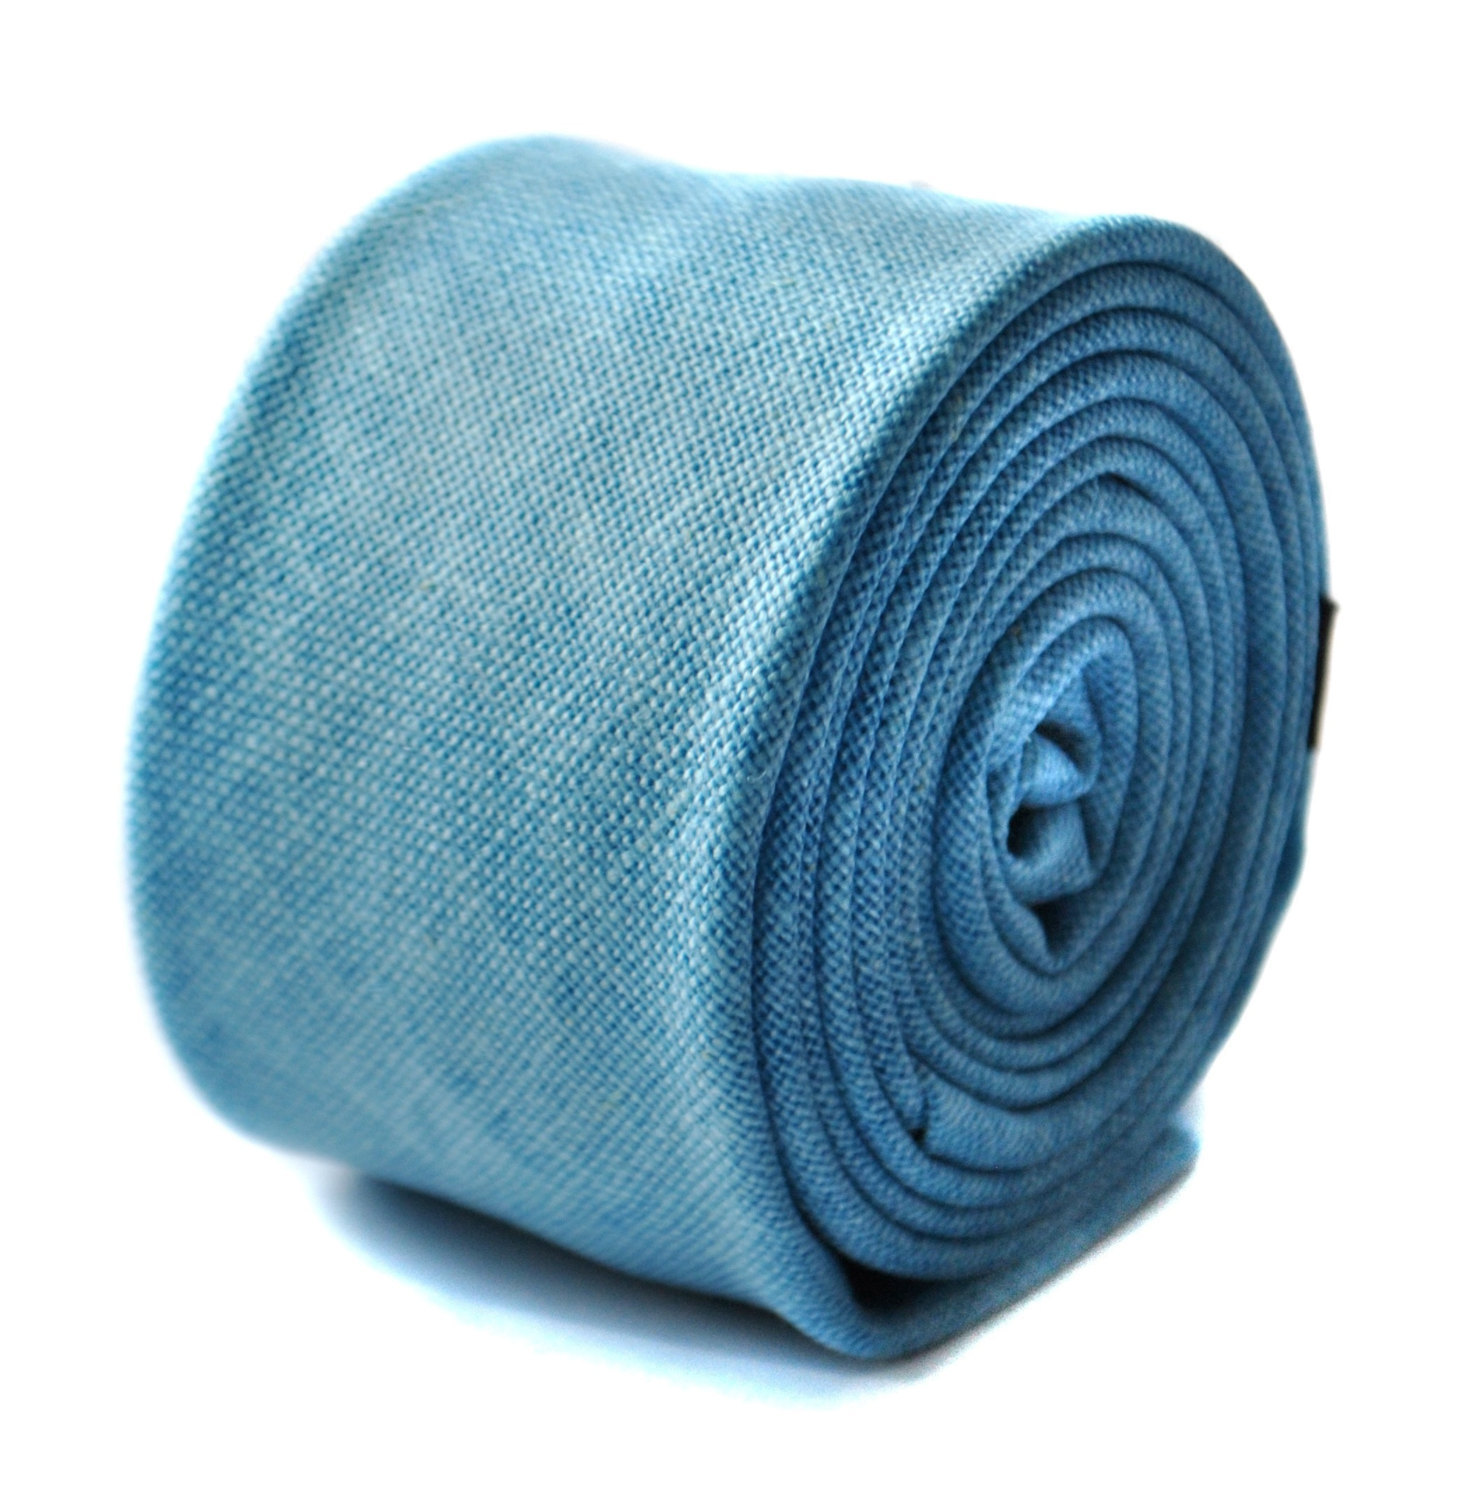 sky blue skinny linen textured tie by Frederick Thomas FT1646